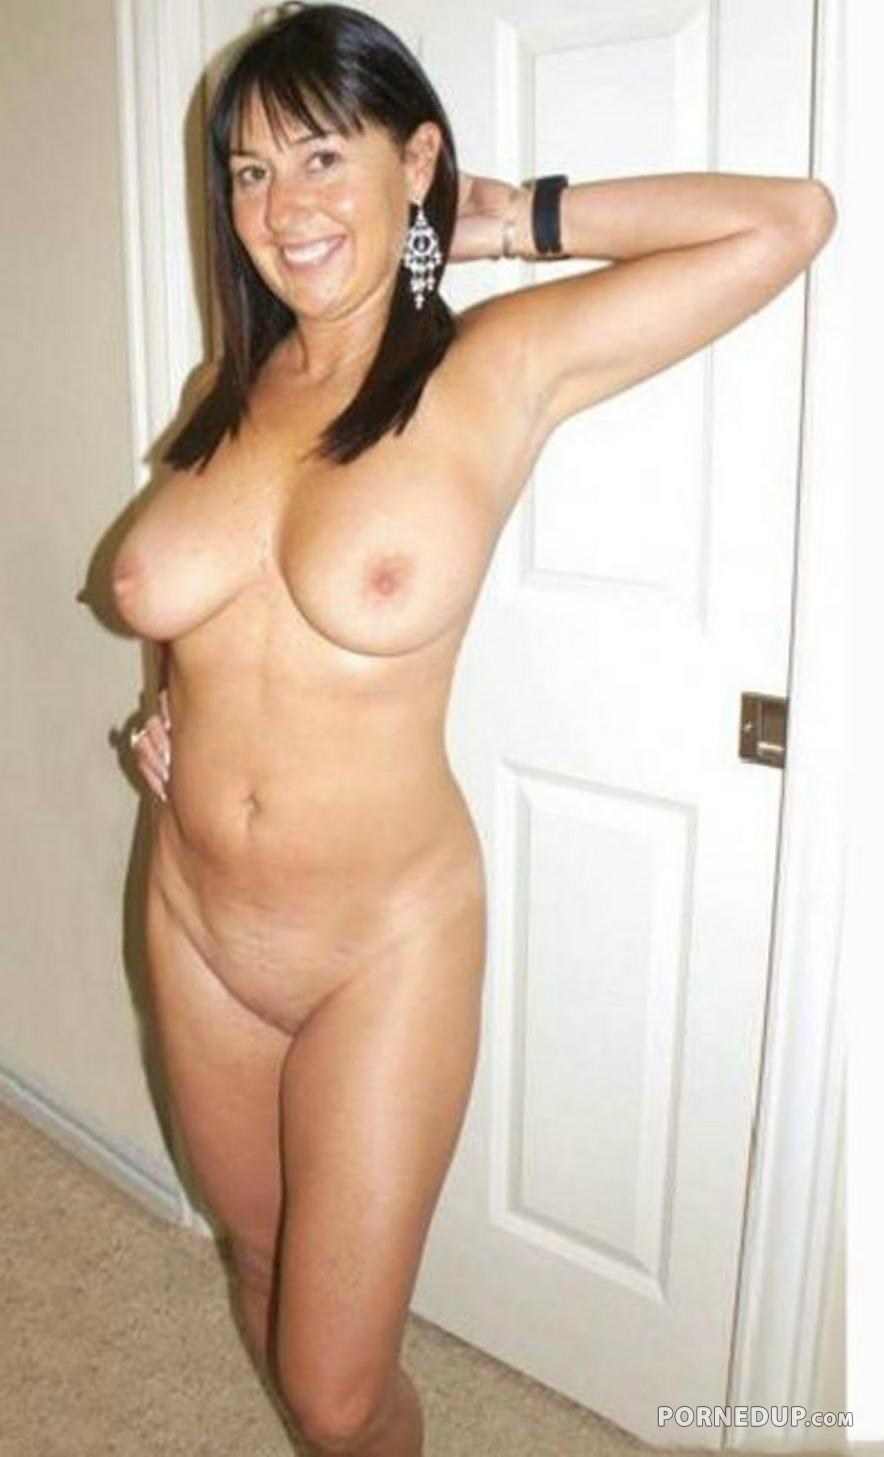 hot girl nude begging to be fucked